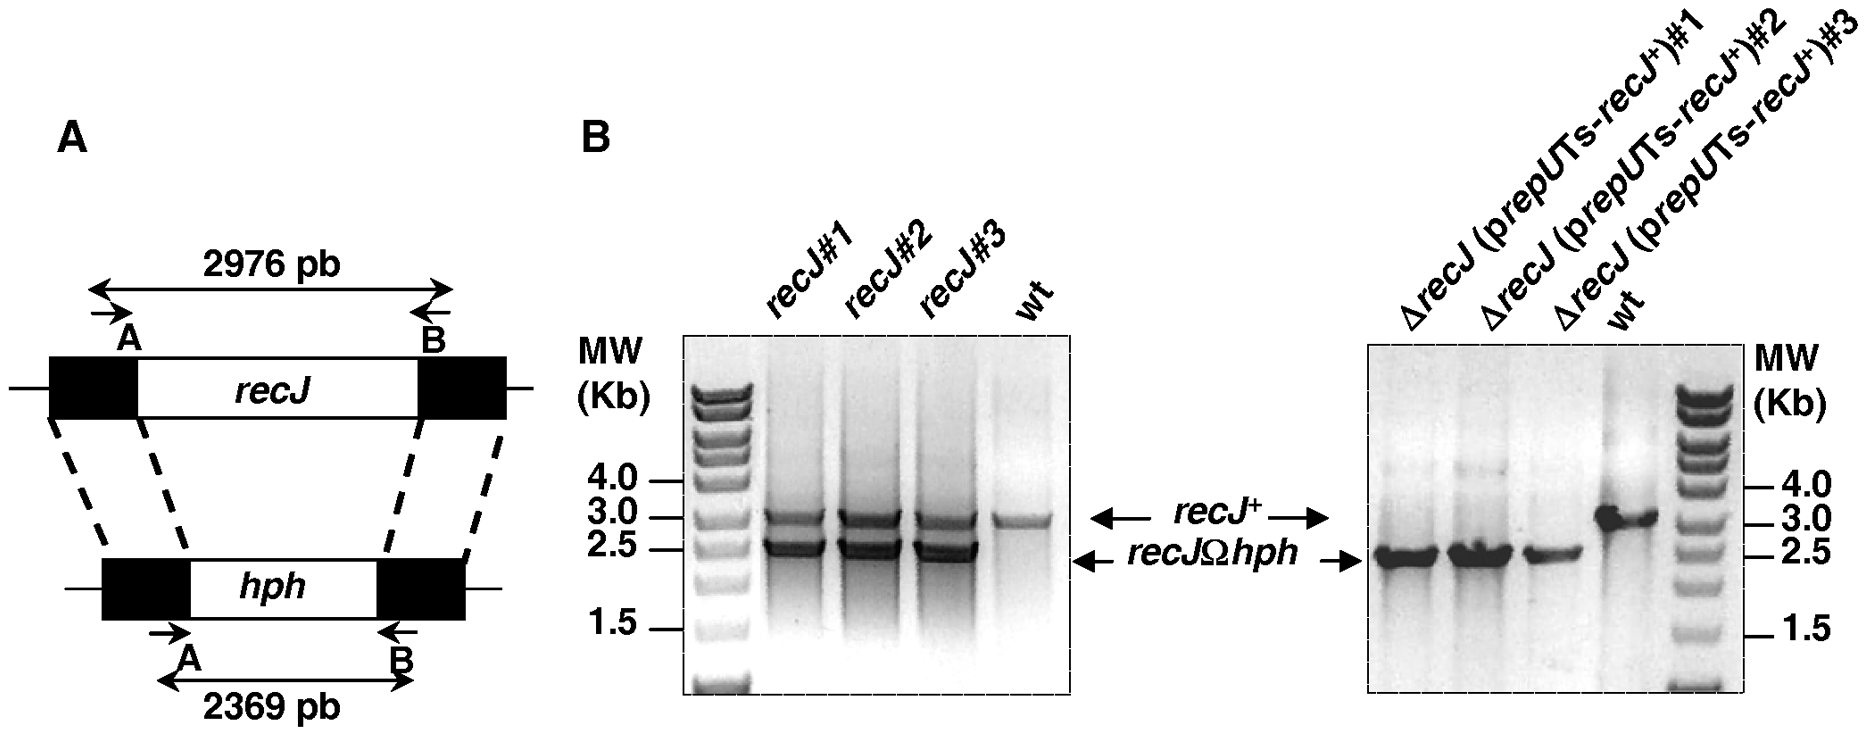 Schematic representation and test of deletion-substitution in the <i>D. radiodurans recJ</i> gene.